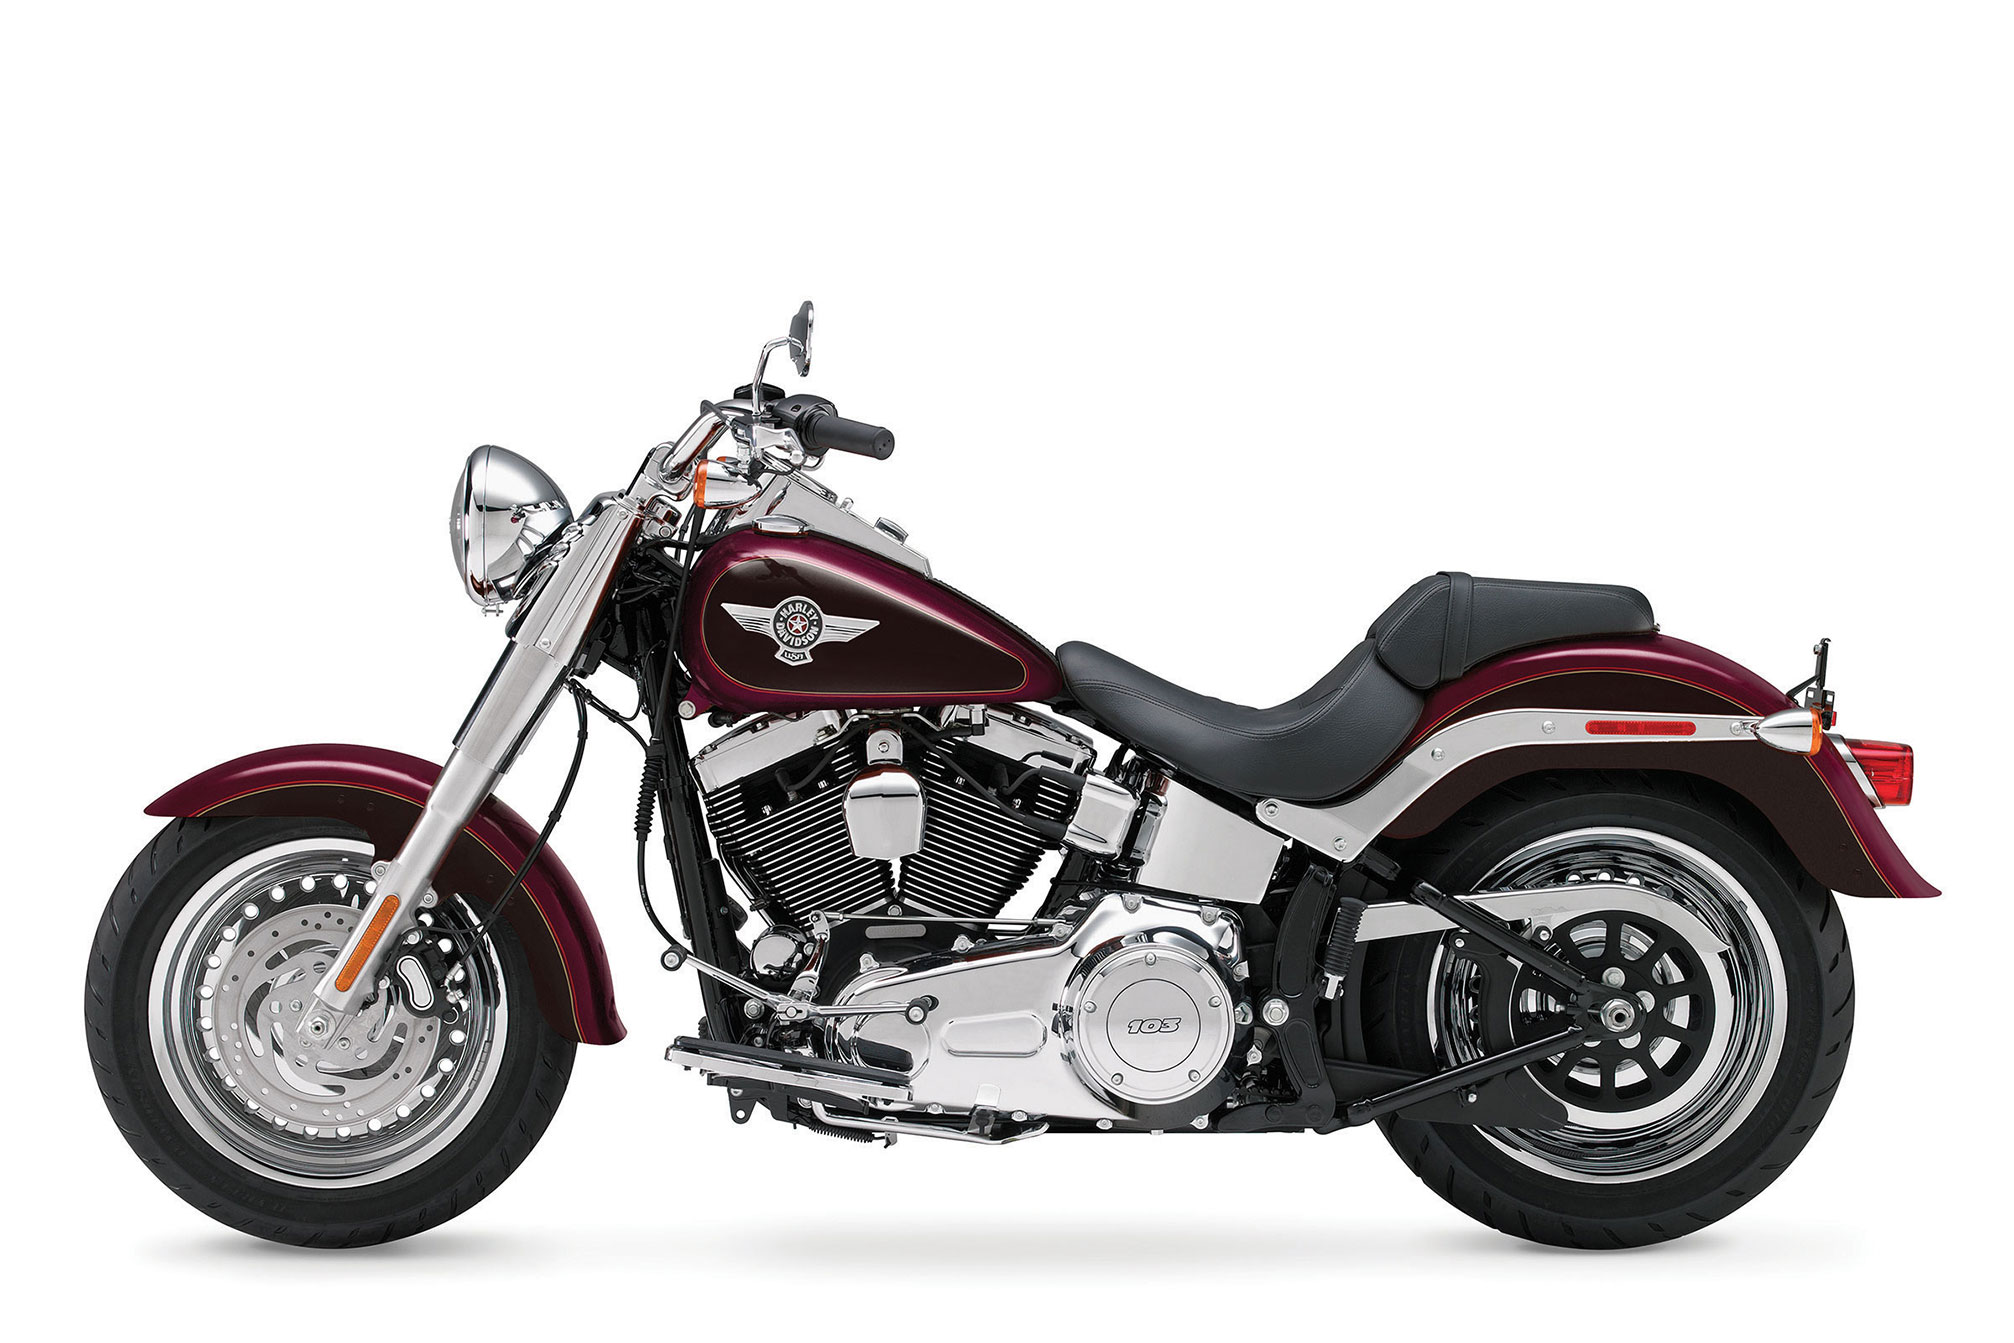 Harley Davidson Fatboy Specifications